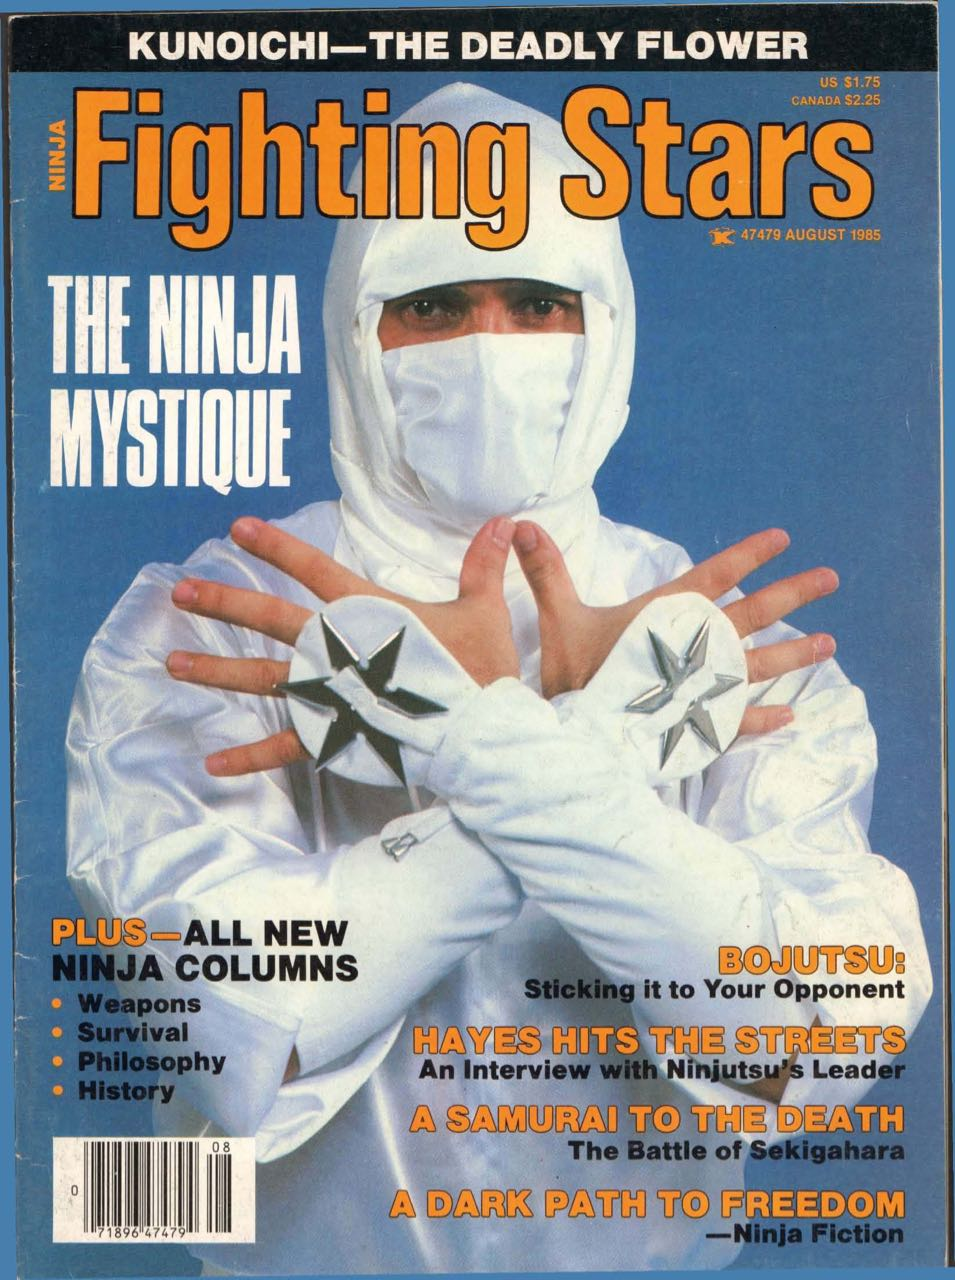 Fighting-Stars-Ninja-August-1985-VOL.-XII-No.-4-Hayes-Hits-the-Streets-The-Ongoing-Journey-of-Stephen-K.-Hayes-by-MikeReplogle.jpg